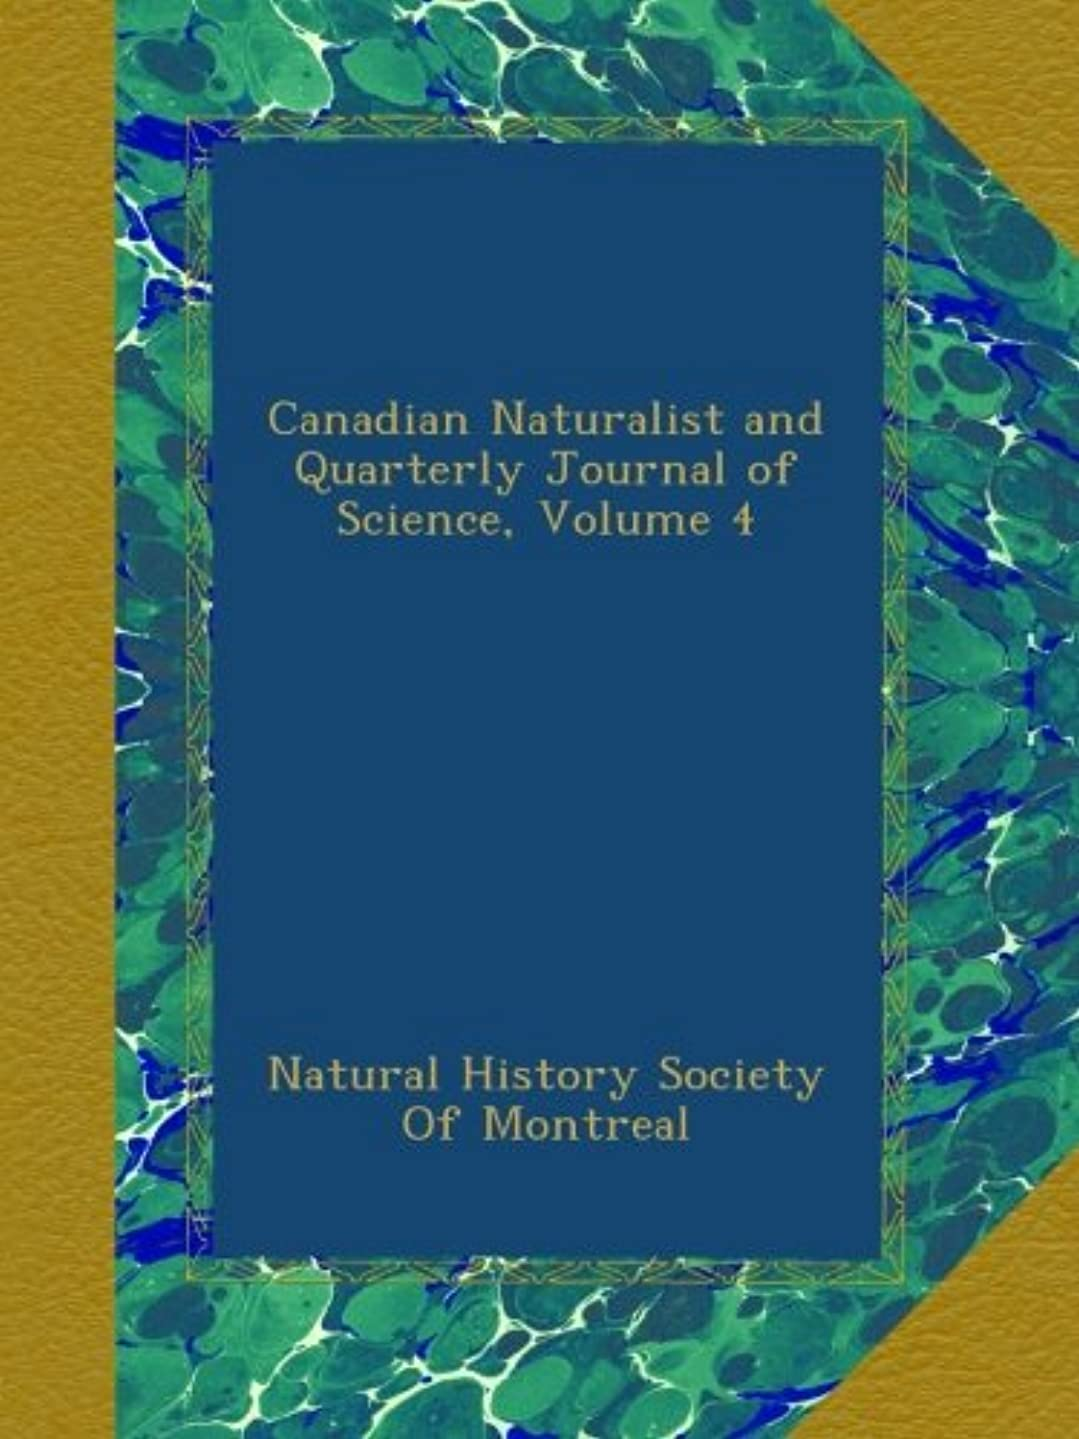 与えるサンダースパキスタン人Canadian Naturalist and Quarterly Journal of Science, Volume 4